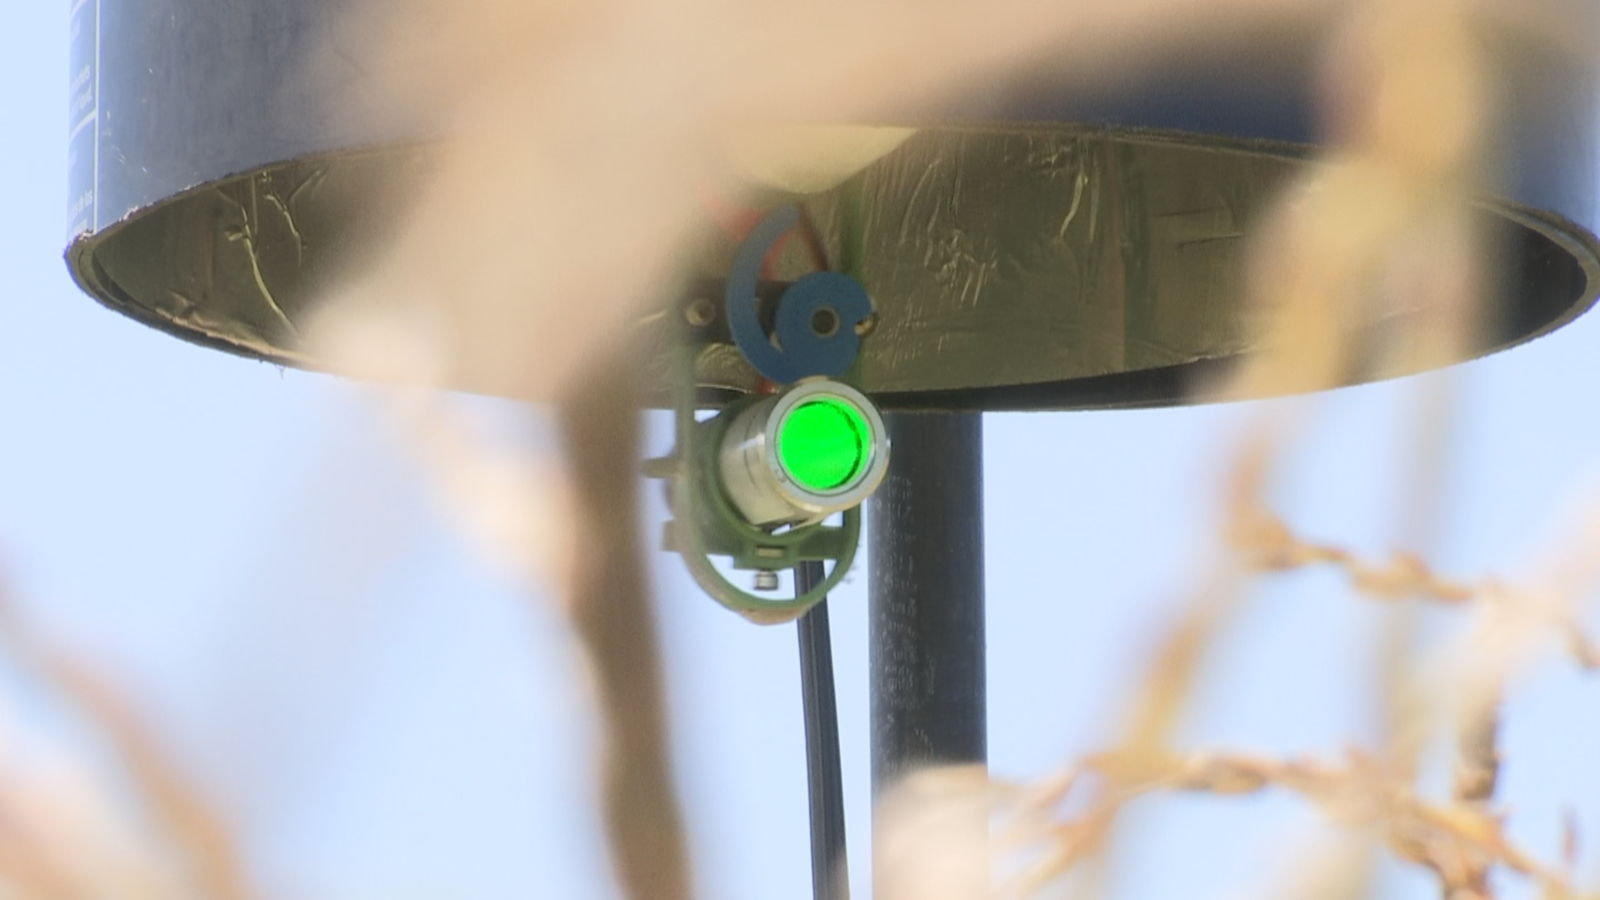 Laser scarecrow is being tested at URI to keep the birds from nibbling on ears of corn. (WJAR)